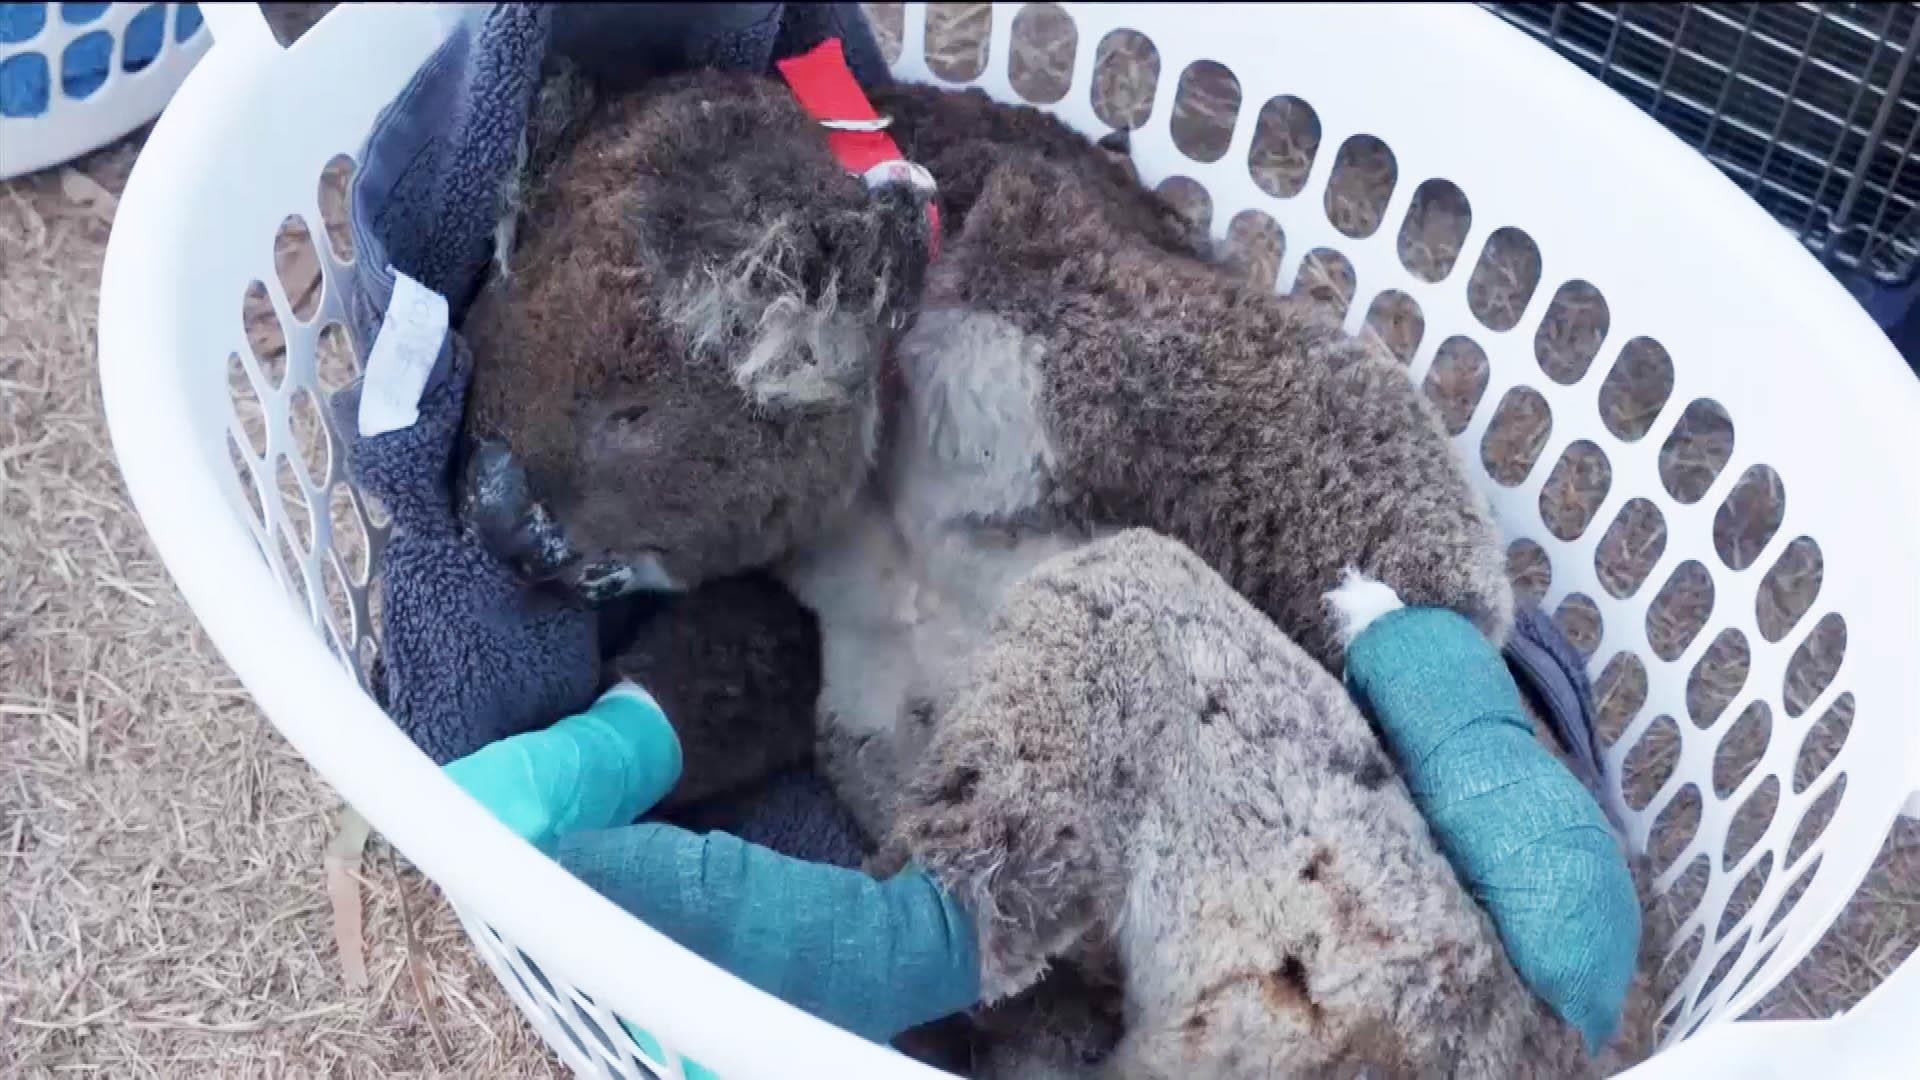 Video shows koalas, other animals hurt in Australia's fires getting treated